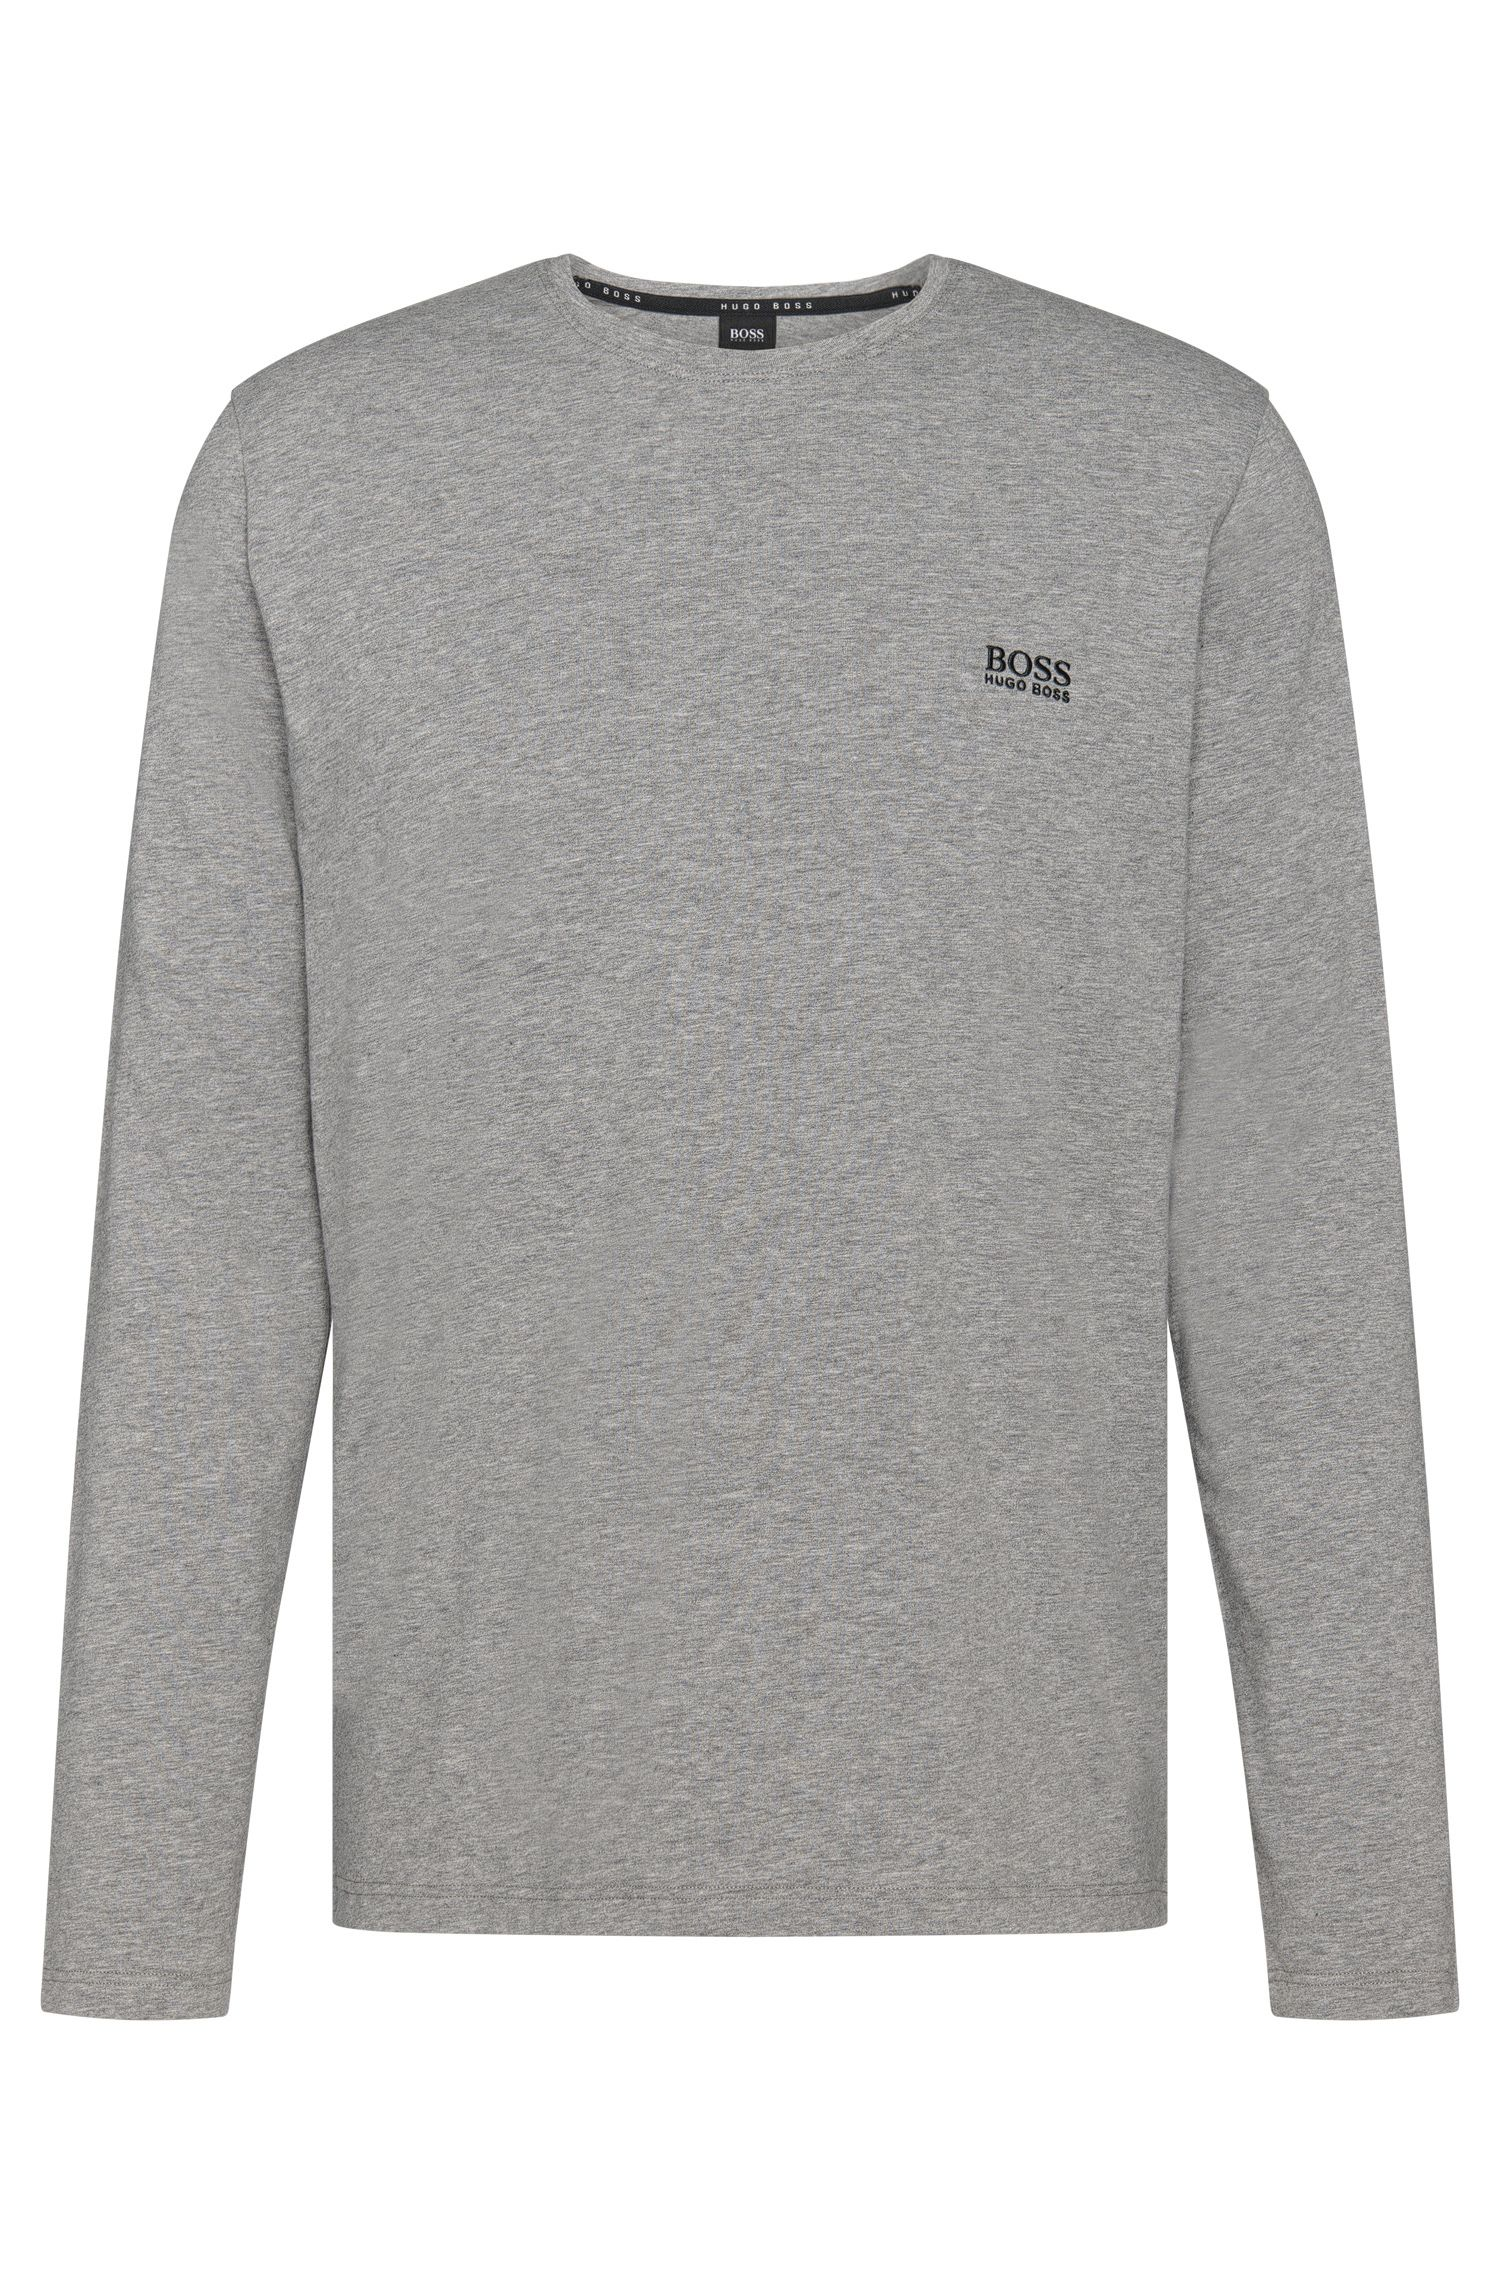 Long-sleeved T-shirt in stretch-cotton jersey